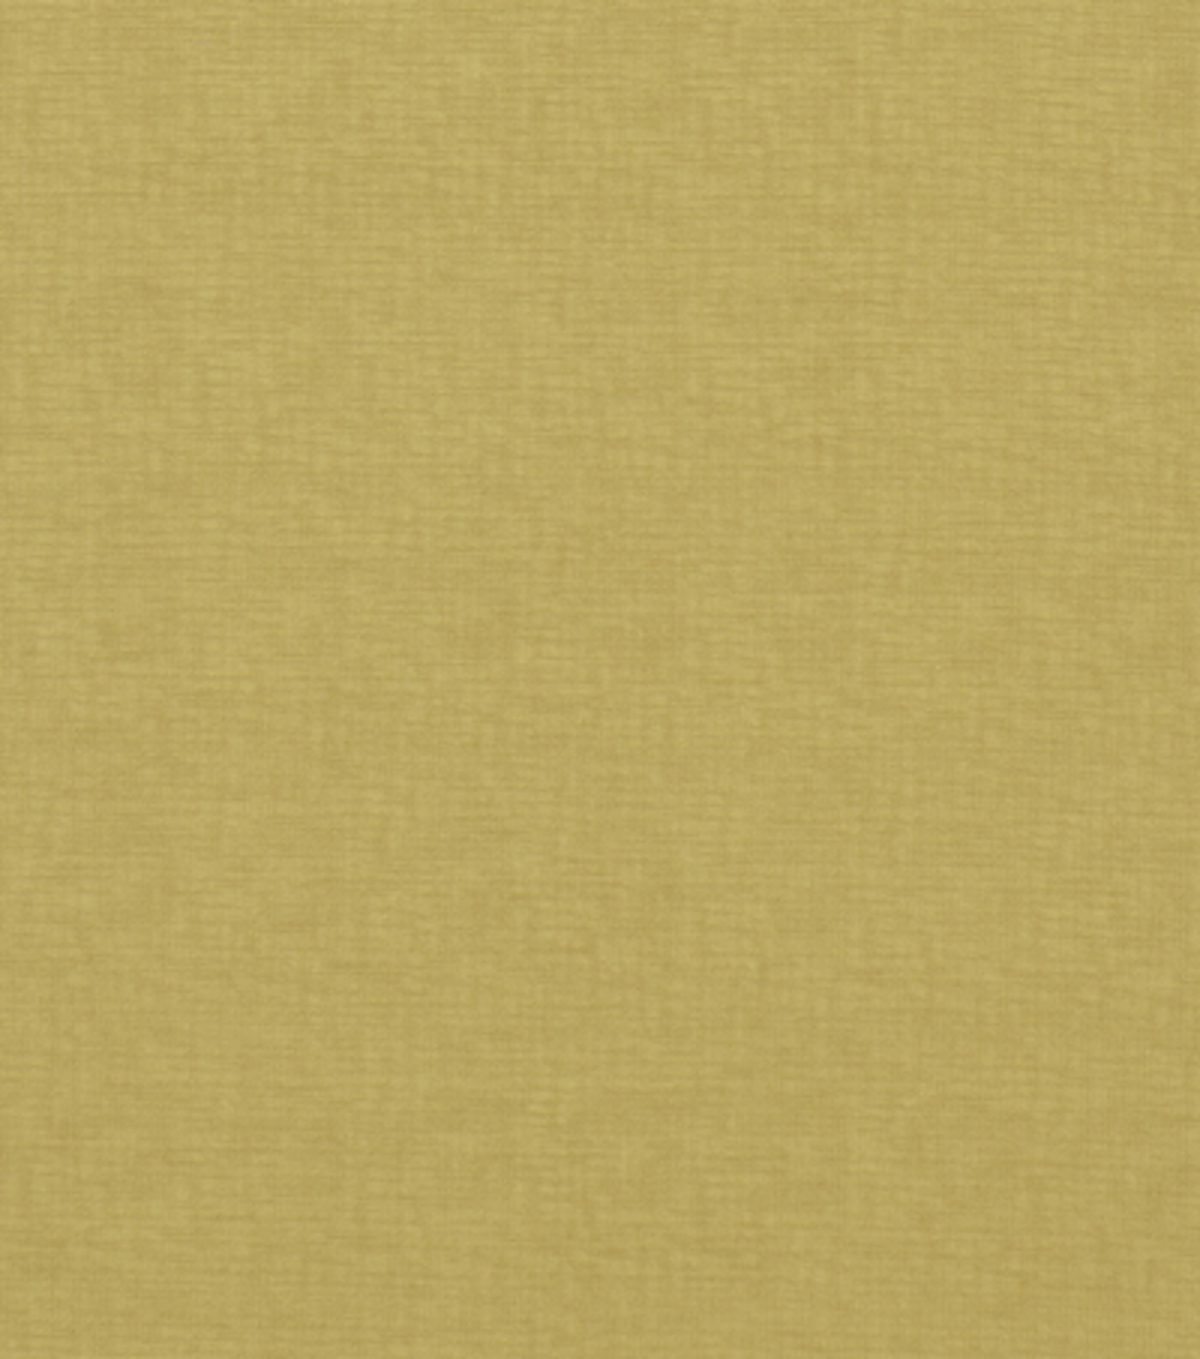 Home Decor 8\u0022x8\u0022 Fabric Swatch-Covington Hanson 145 Travertine